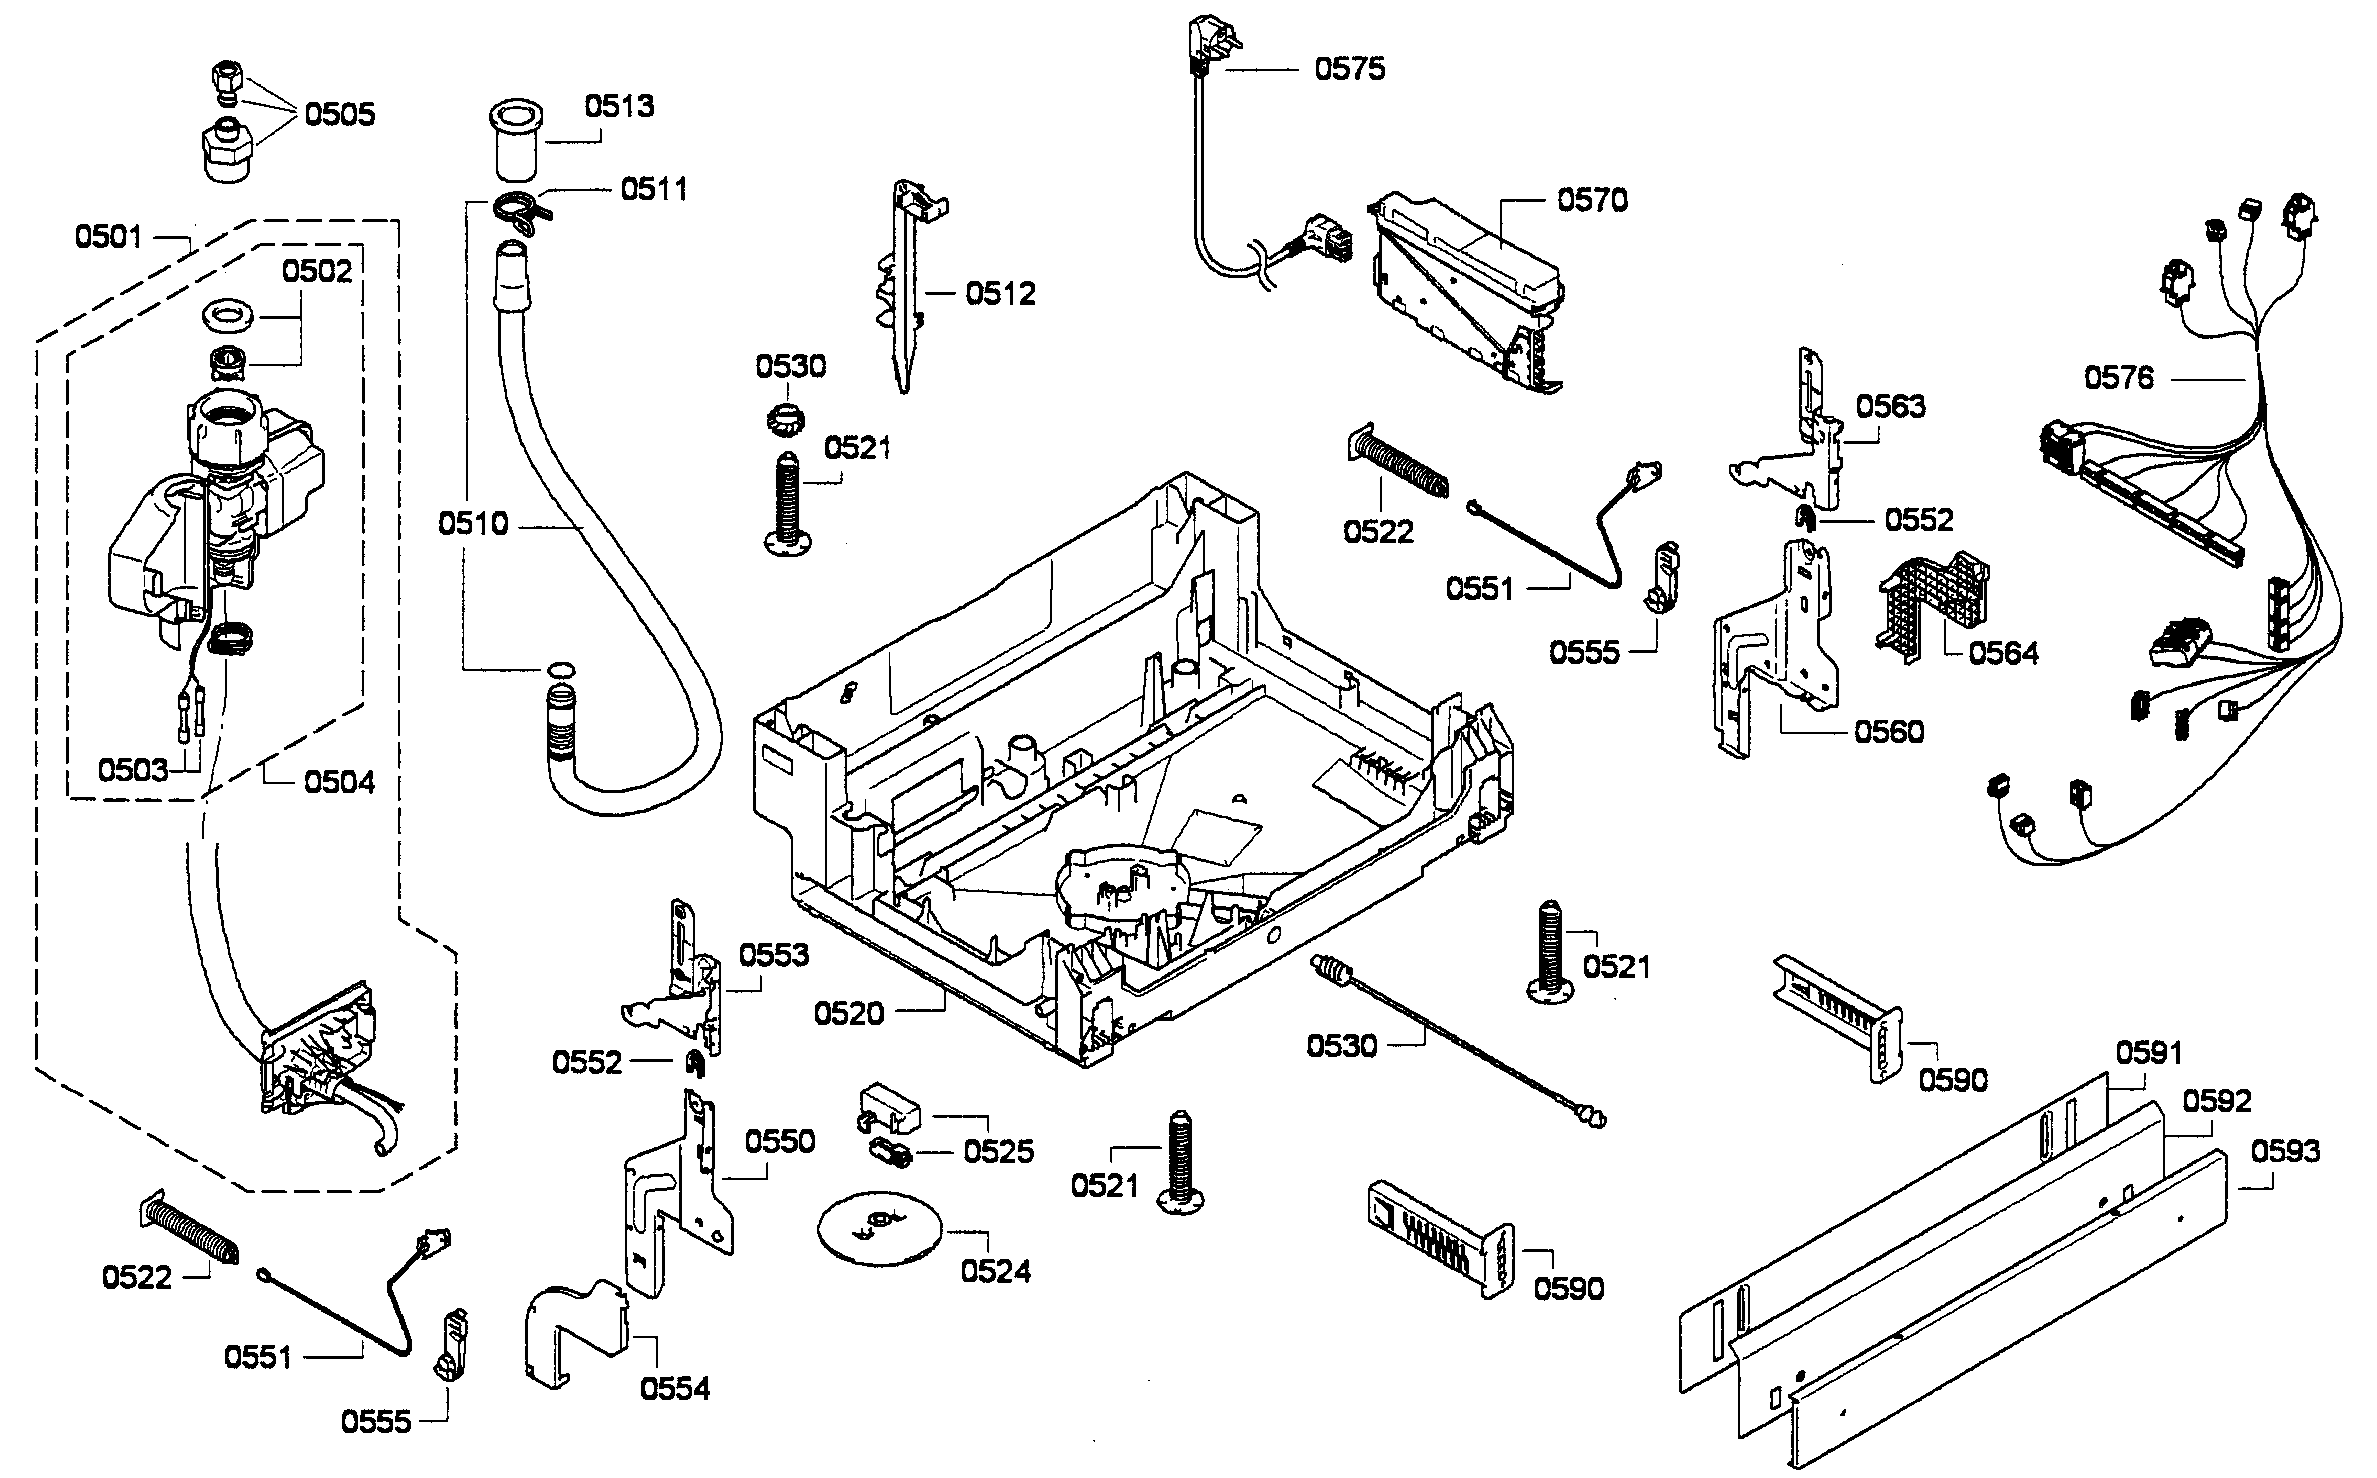 BASE ASSY Diagram & Parts List for Model she68e15uc01